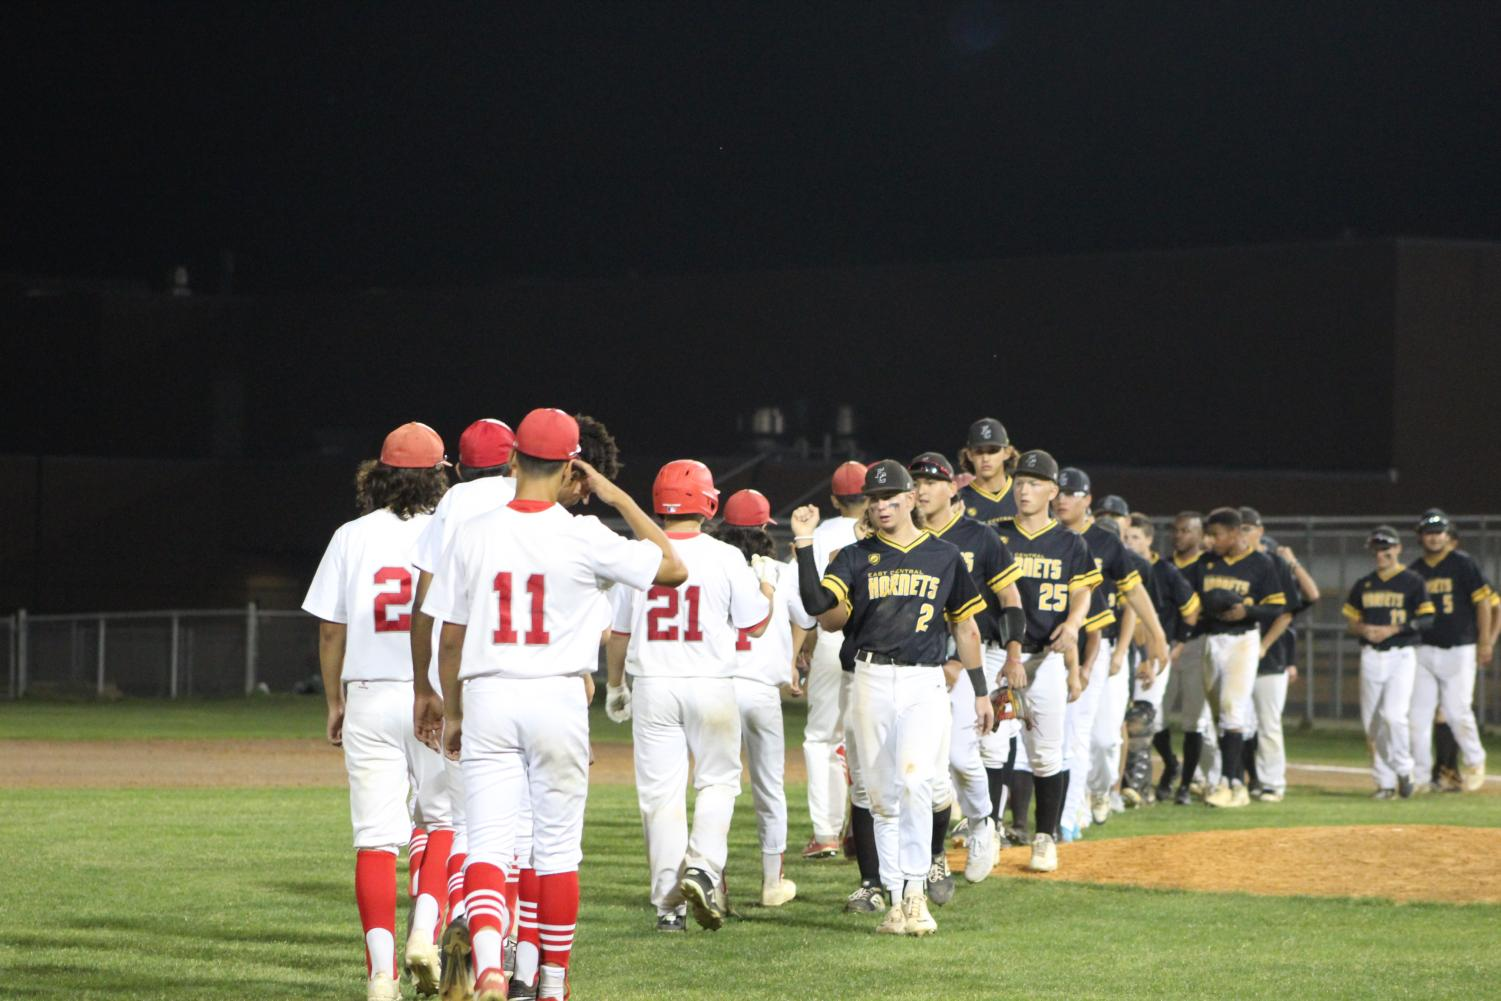 The baseball team high fives East Central after their lost. After this game, they have two more away games for the season.